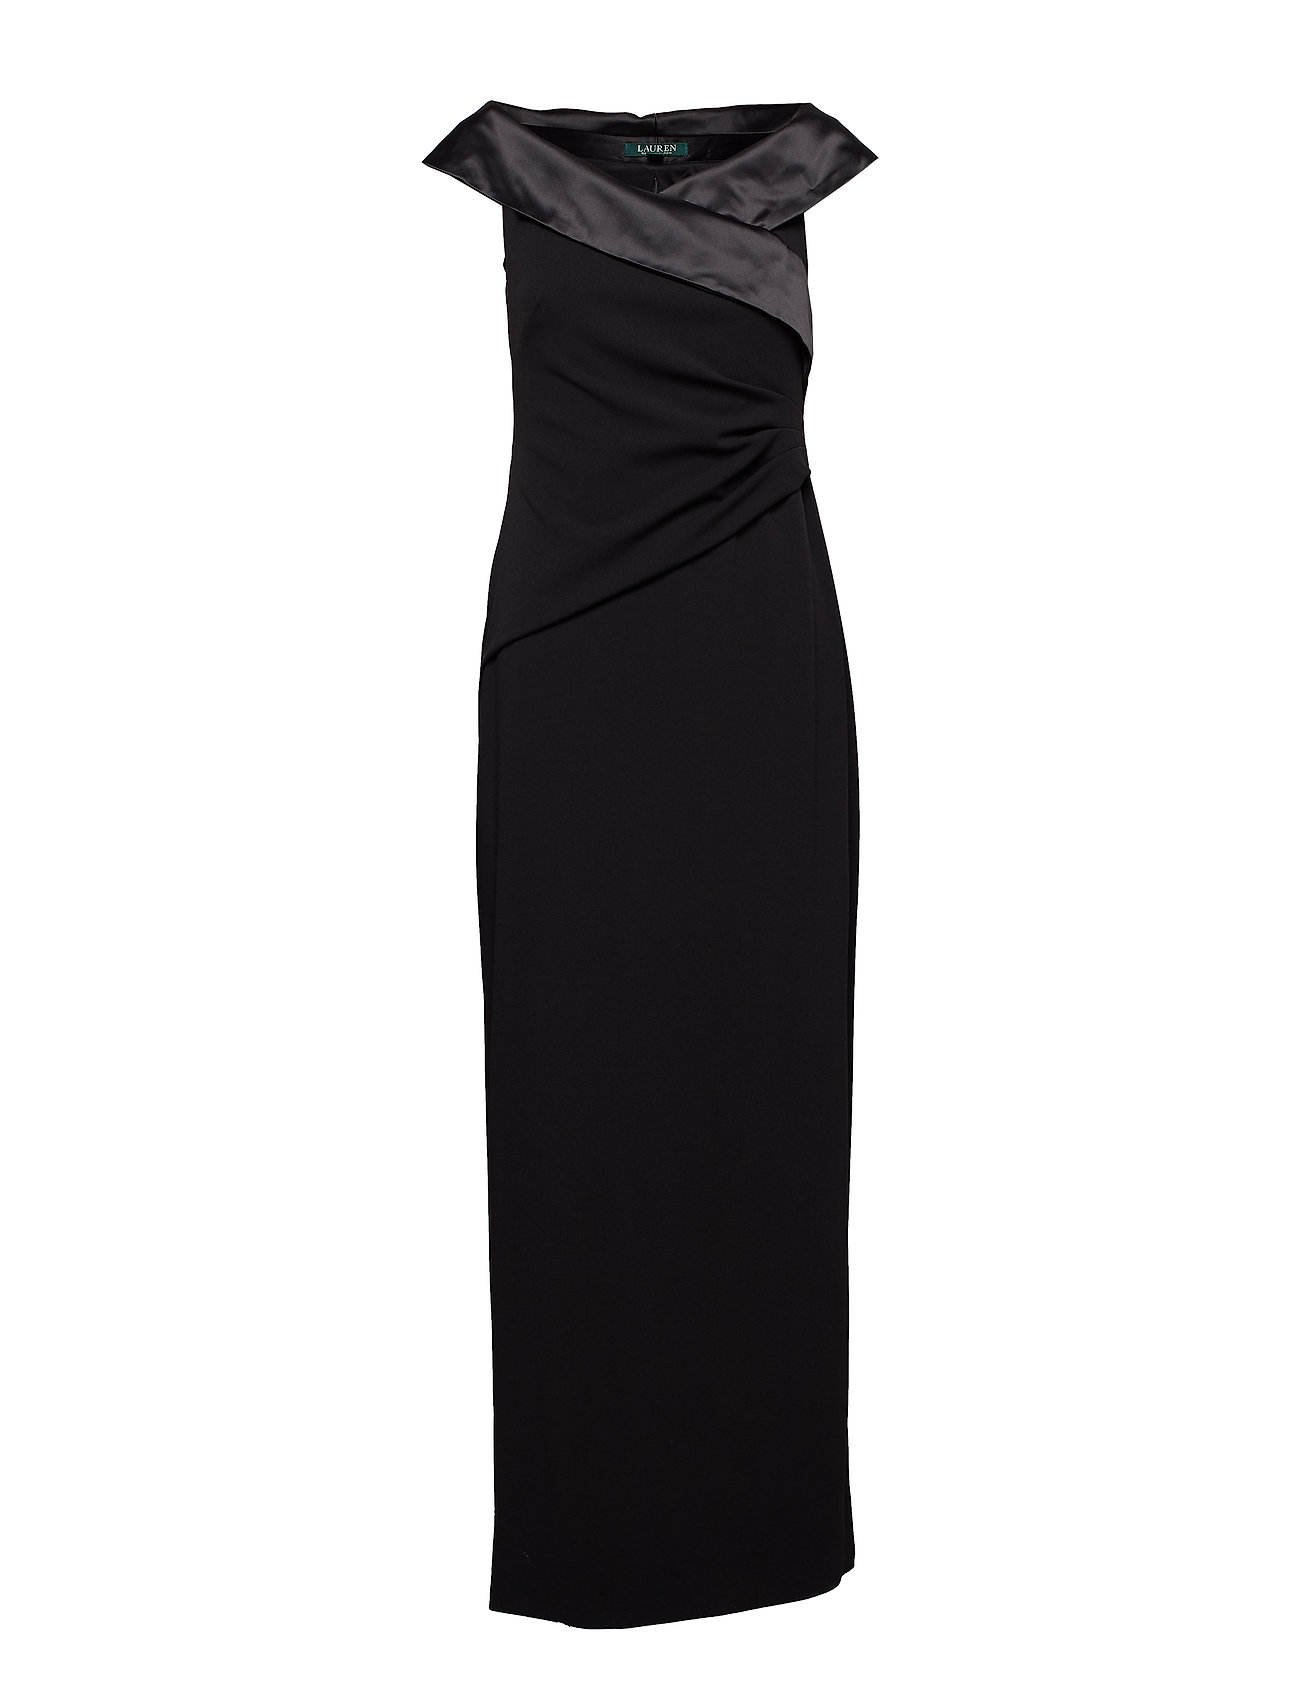 Lauren Ralph Lauren Crepe Off-the-Shoulder Gown - BLACK